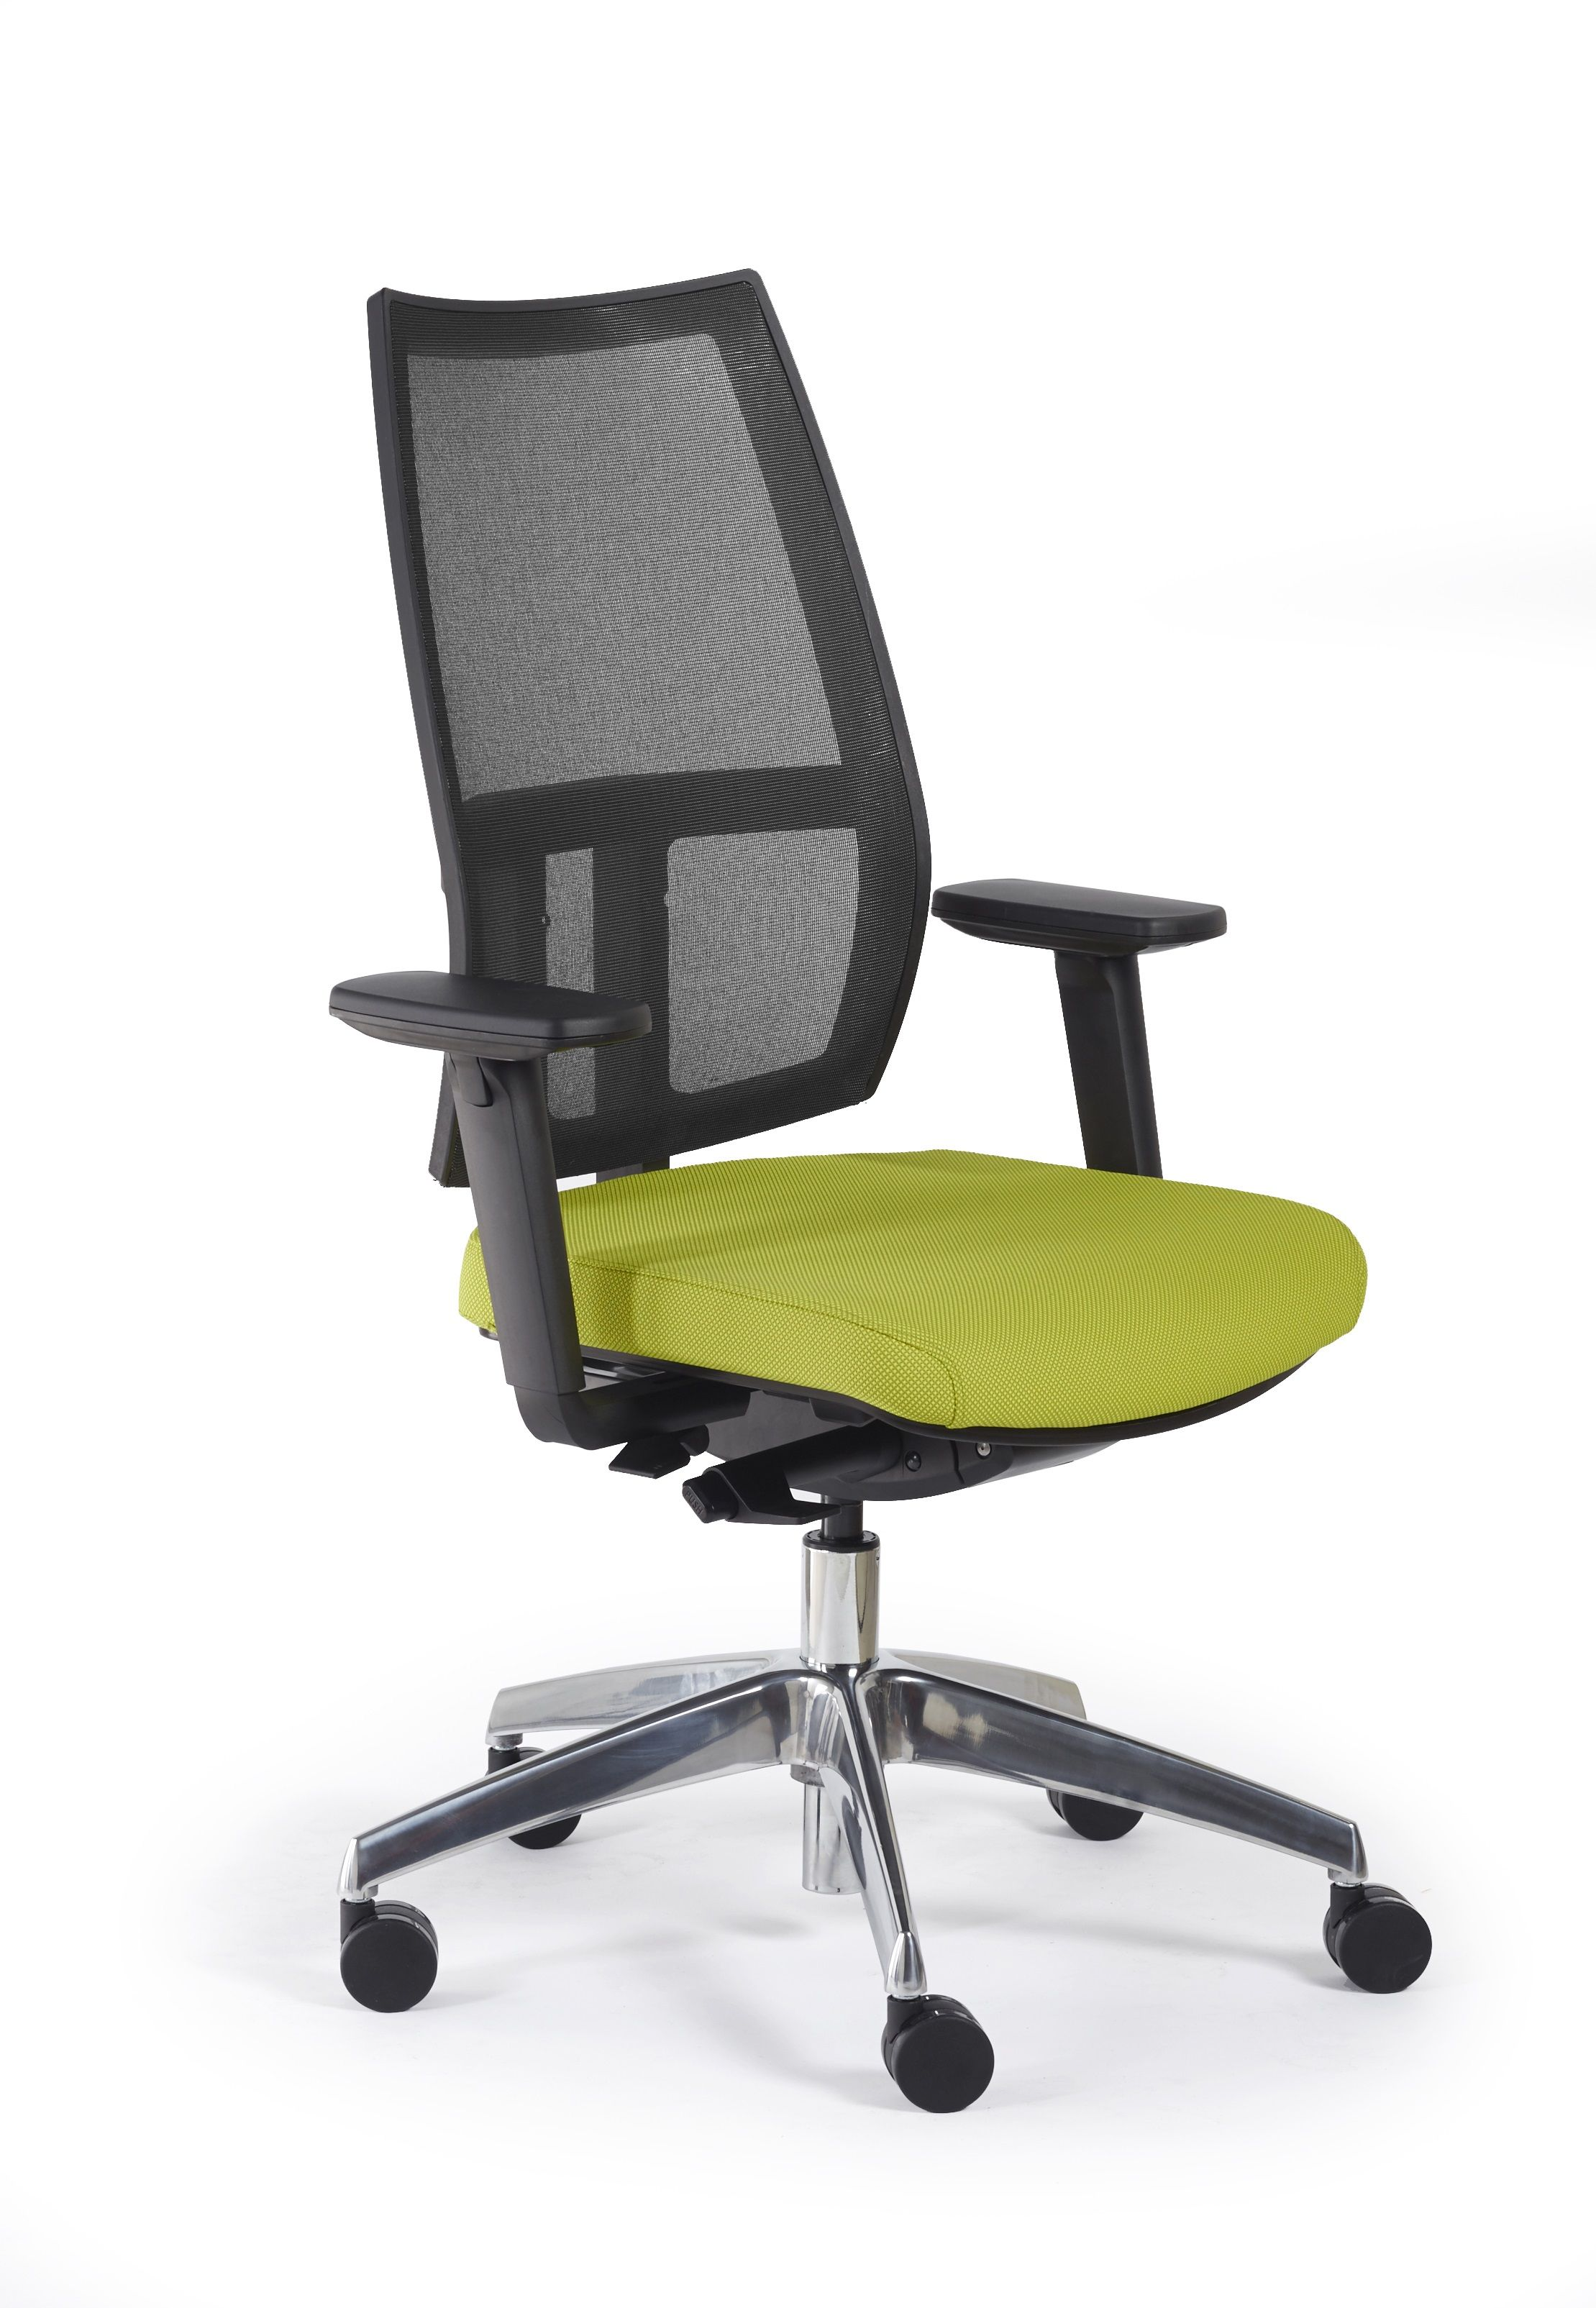 Office Chairs Leeds Office chair, Chair, Task chair